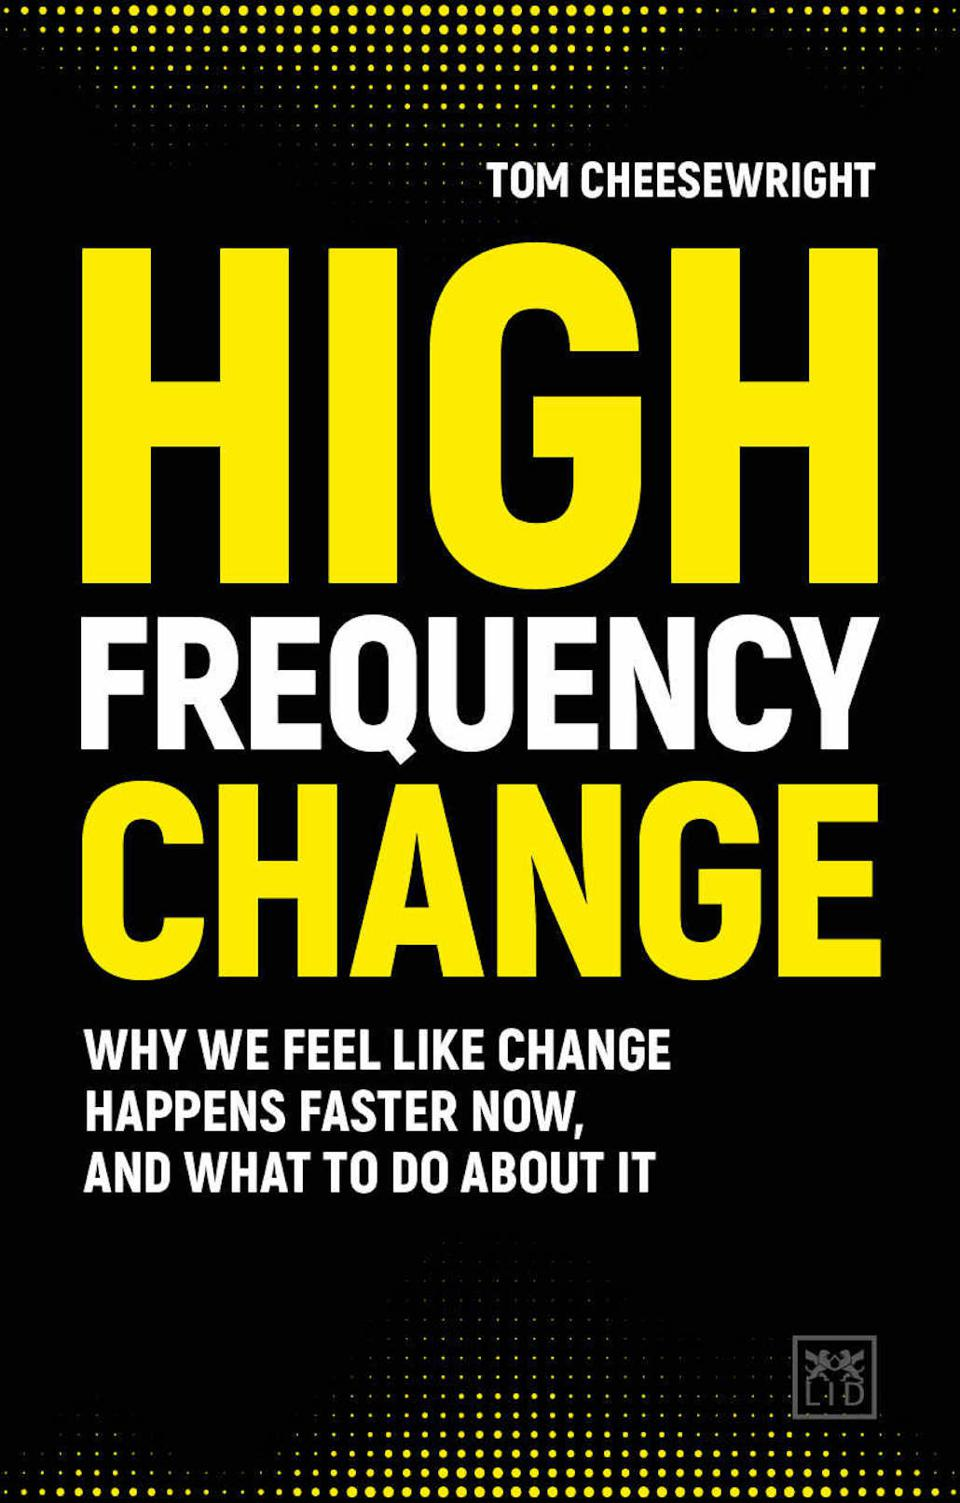 High Frequency Change: Why We Feel Like Change Happens Faster Now, and What to Do About It by Tom Cheesewright